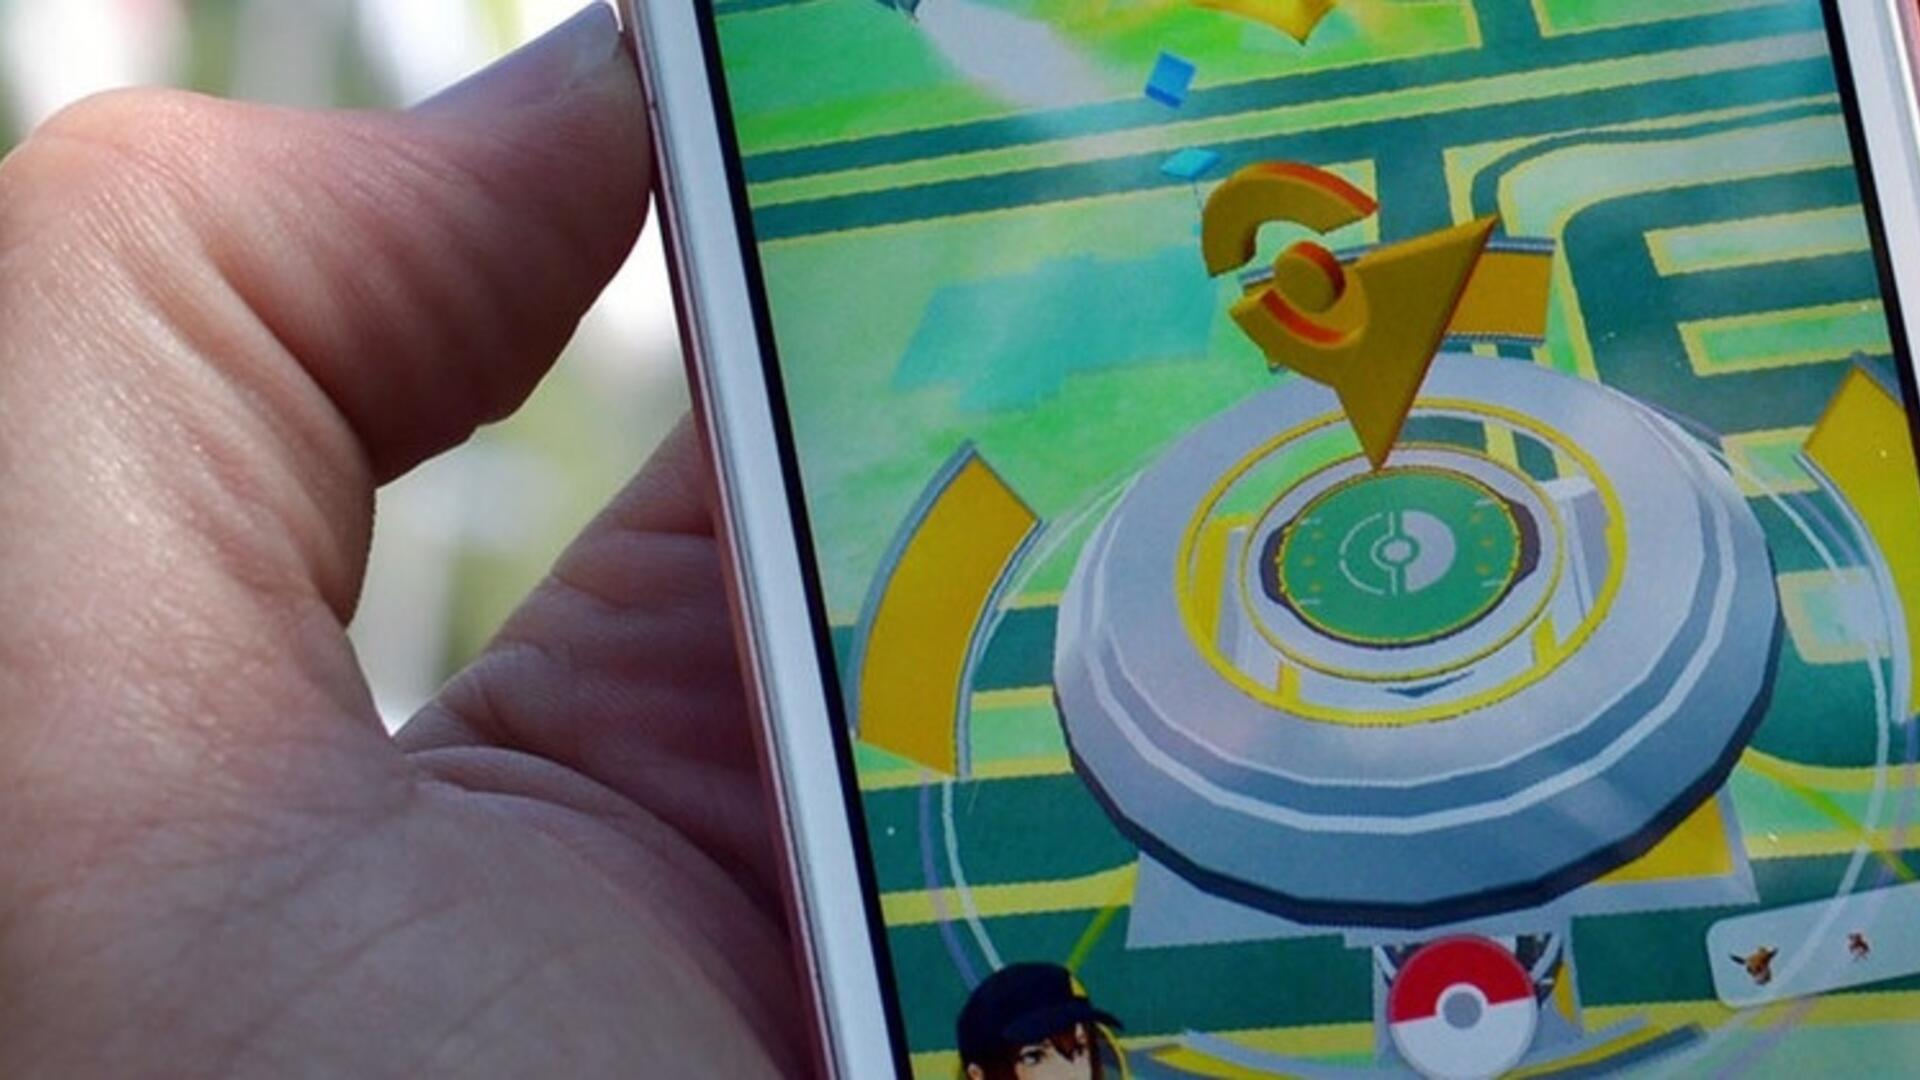 Pokemon Go PokeCoins - How to Earn More PokeCoins in Gyms